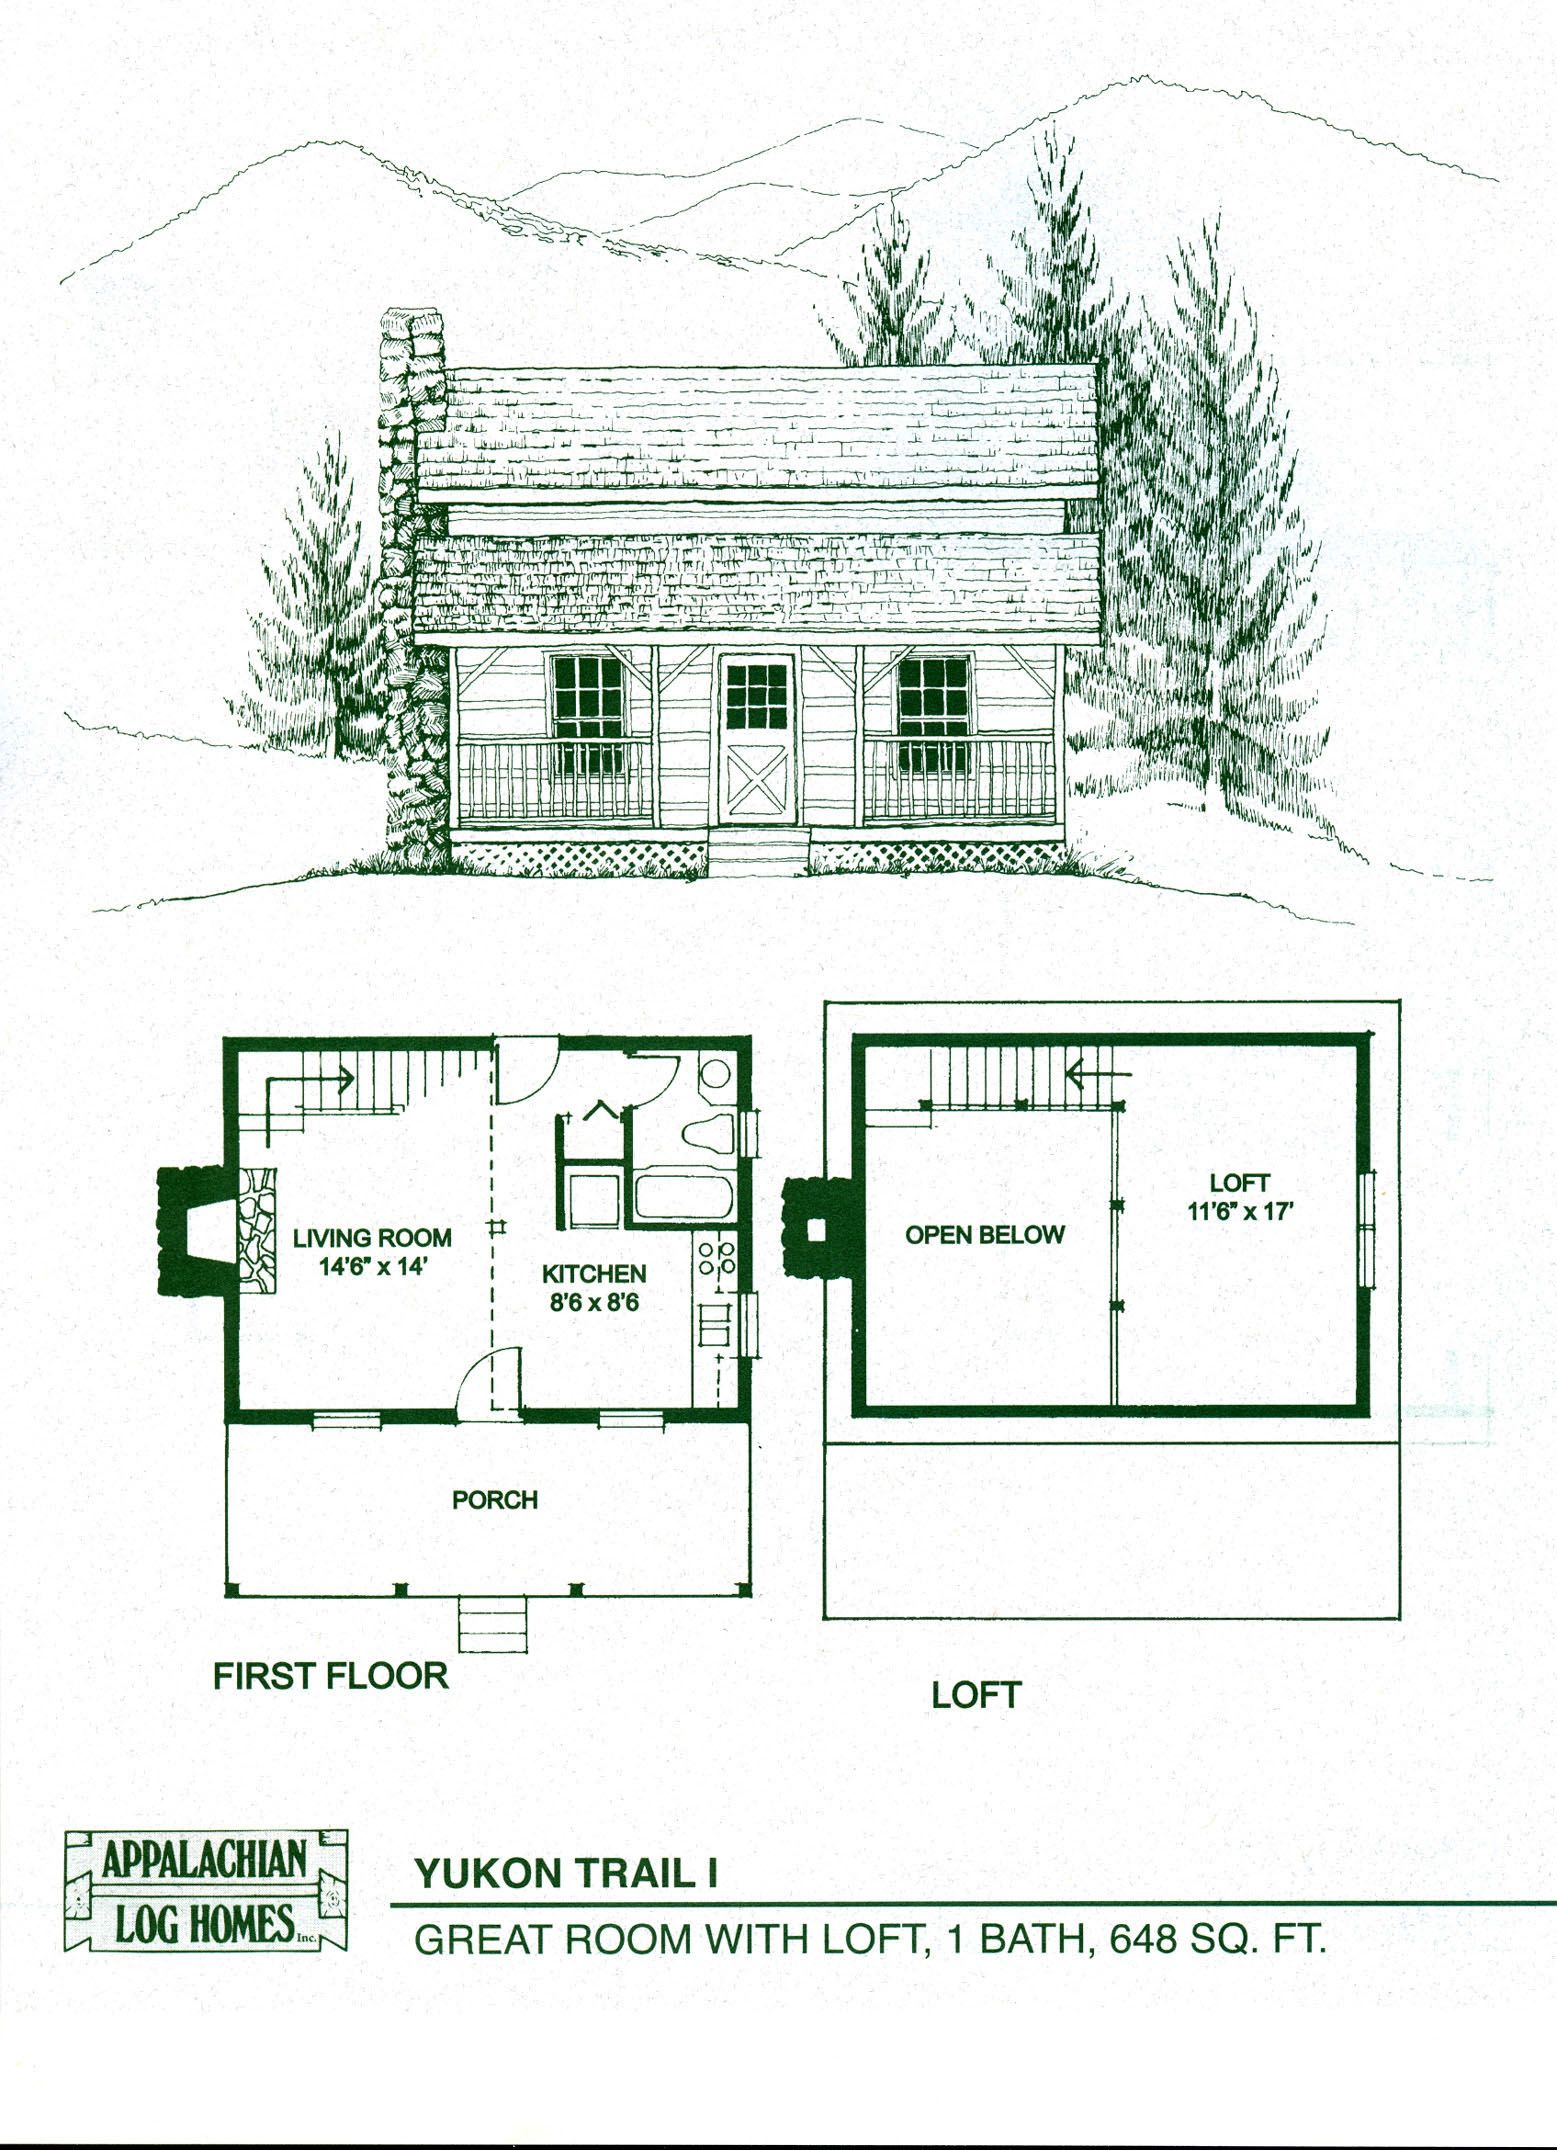 Log home floor plans log cabin kits appalachian log for Design homes cabins